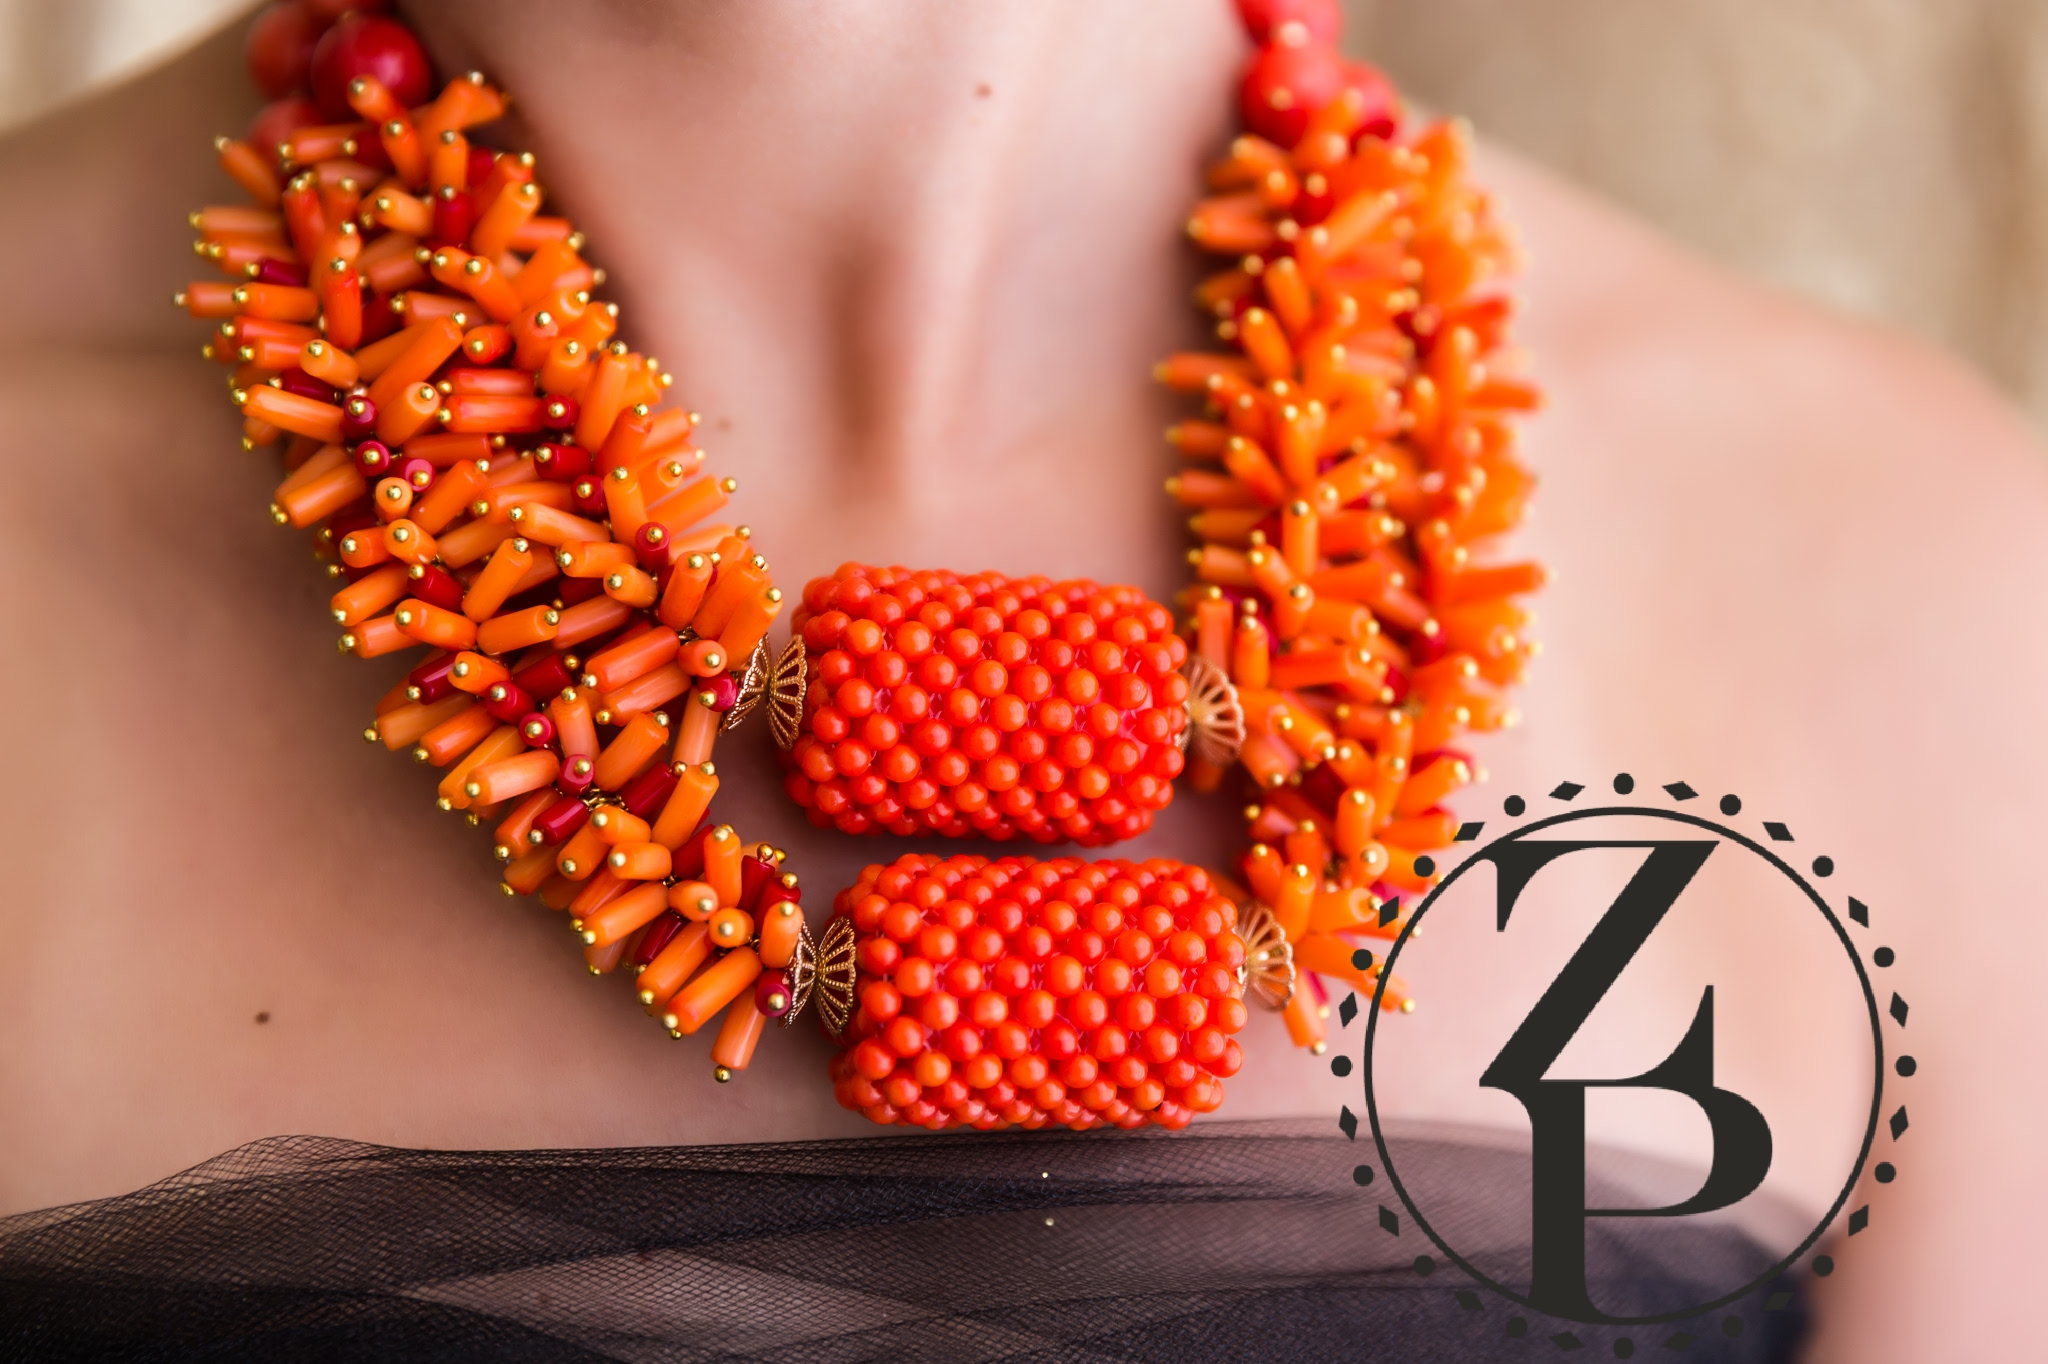 zuri-perle-nigerian-wedding-jewelry-handcrafted-orange-bridal-coral-jewelry.jpg